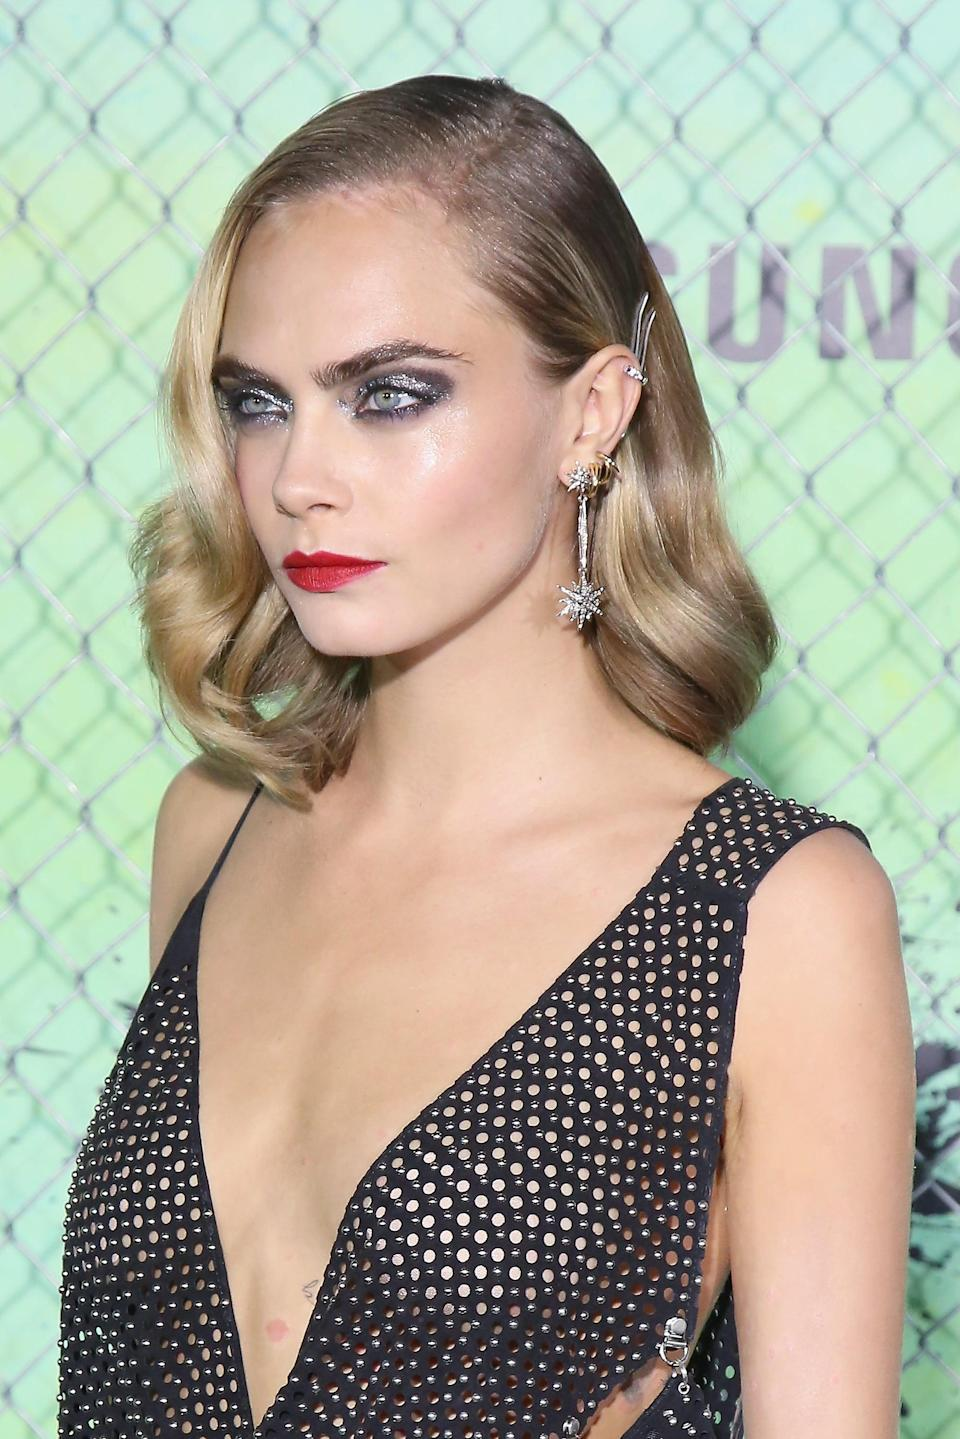 <p>It's not the first time Delevingne's worn Old Hollywood-style waves clipped off to one side with a jeweled accessory, but we're still not bored of it yet. </p>